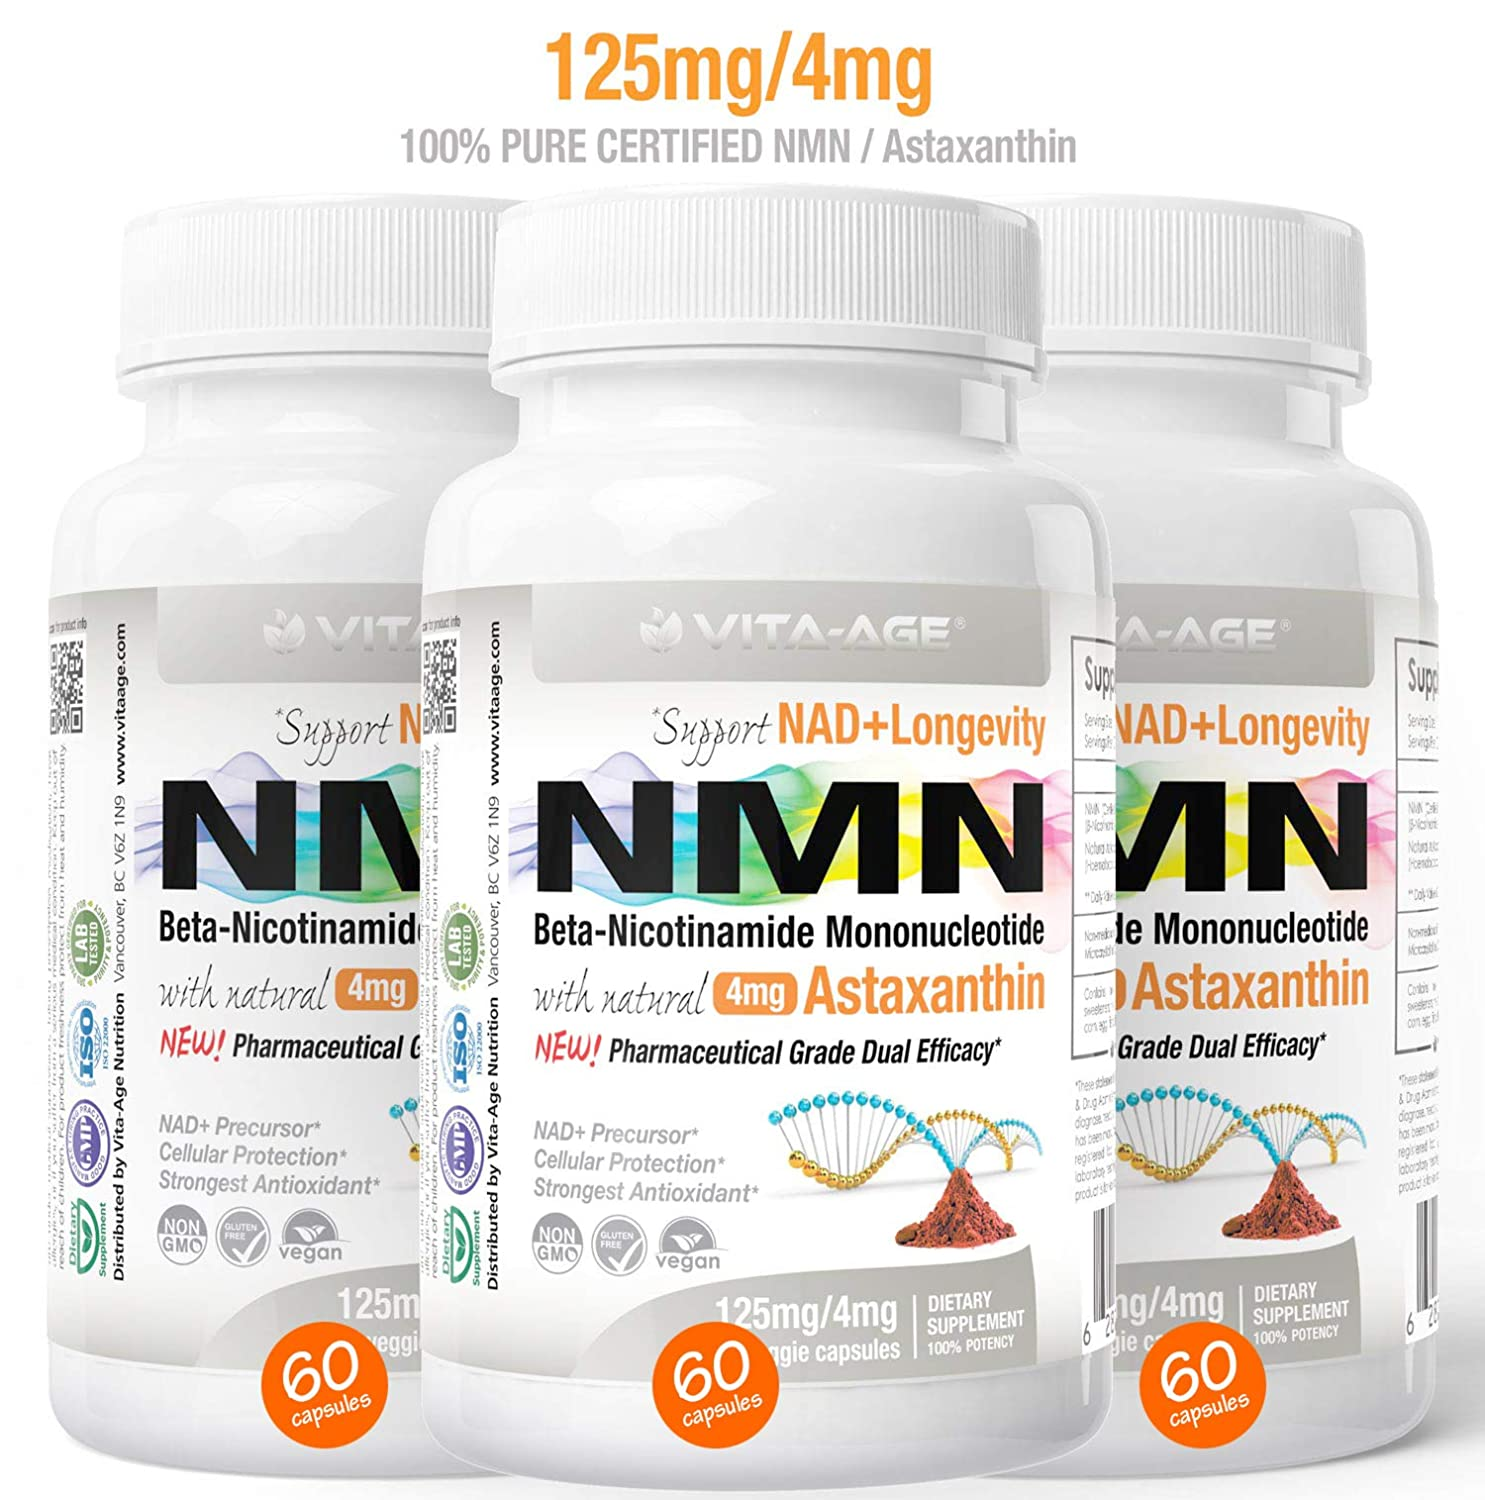 3 x NMN 60 Capsules 125mg Vita-Age Certified NMN – Nicotinamide Mononucleotide Astaxanthin – Sirtuin Activation Anti-Aging DNA-Repair Energy NAD Antioxidants